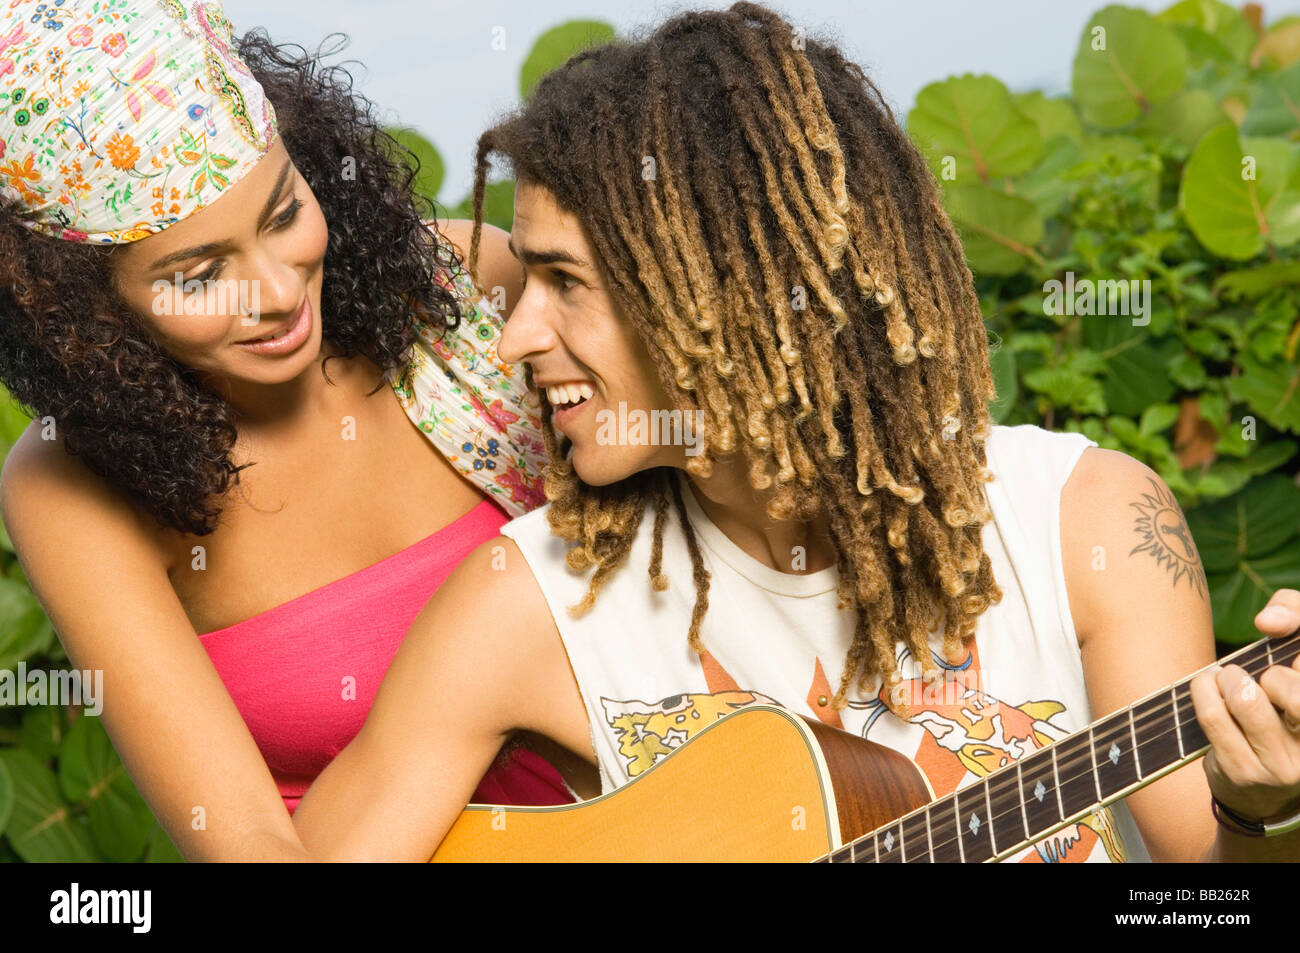 Couple playing a guitar and smiling at each other - Stock Image